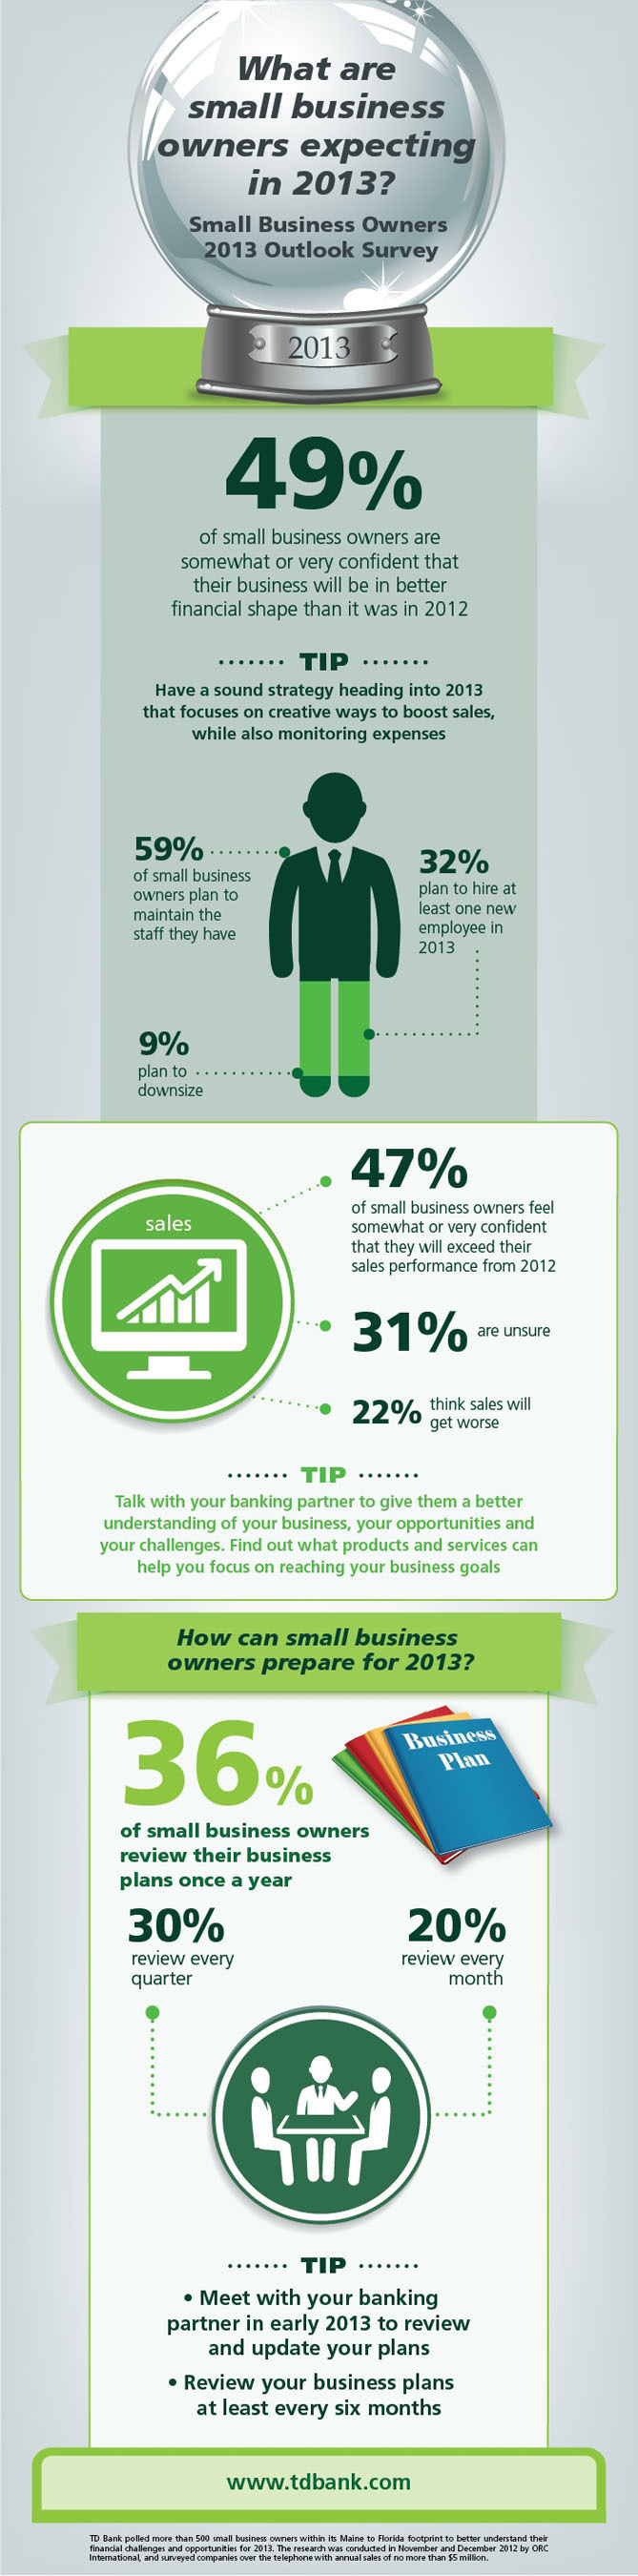 Small Business Owners Plan for Better Financial Health in 2013: TD Bank Survey. (PRNewsFoto/TD Bank) ...